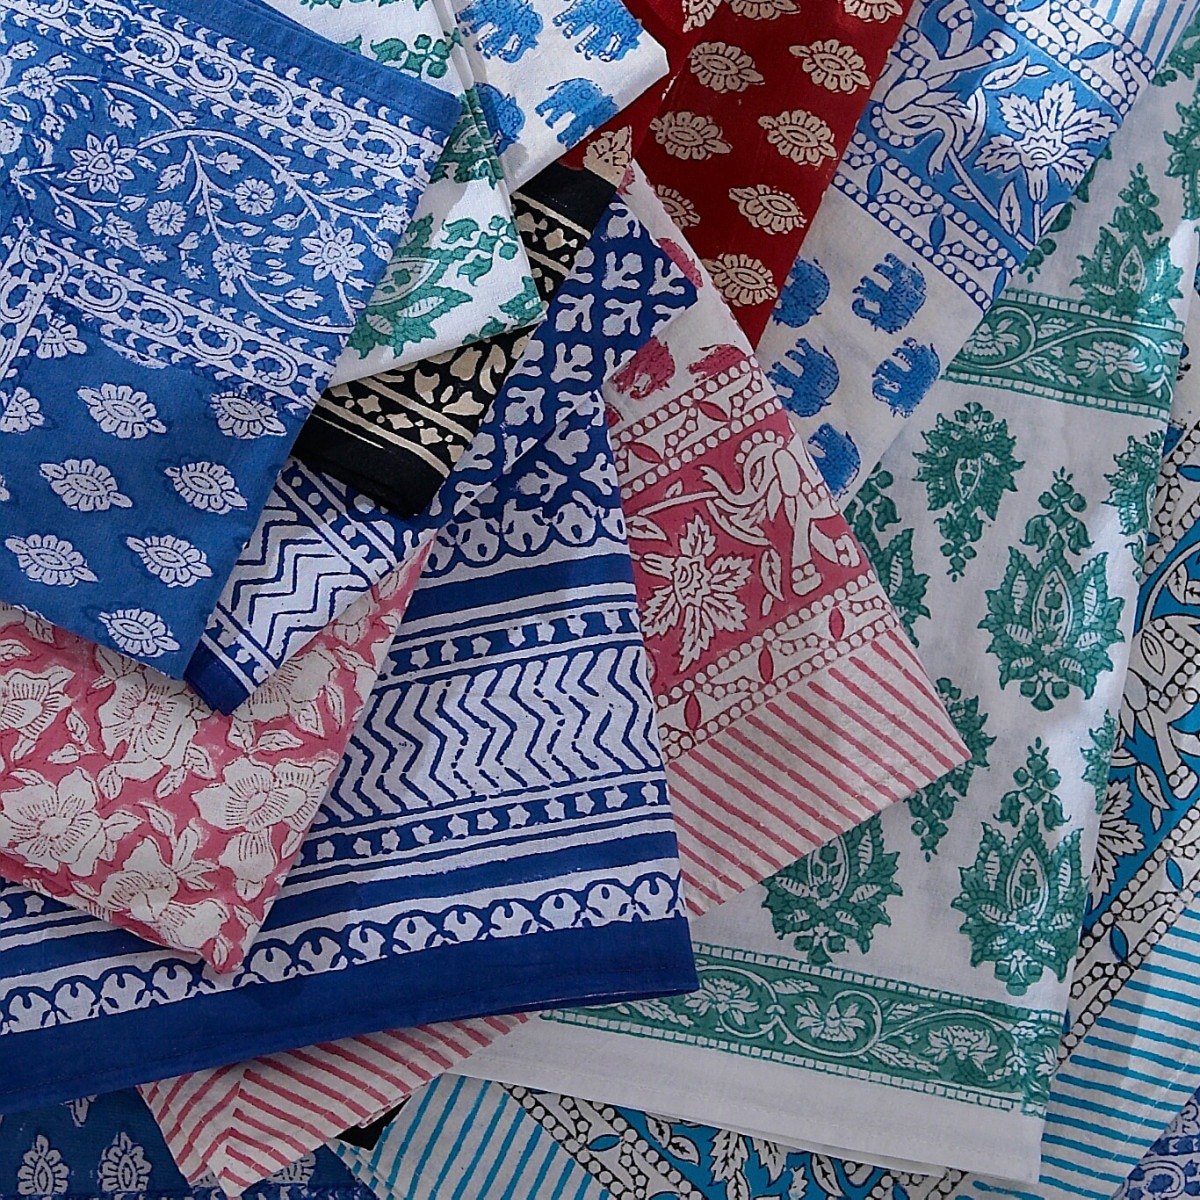 Block printed table cloths and napkins